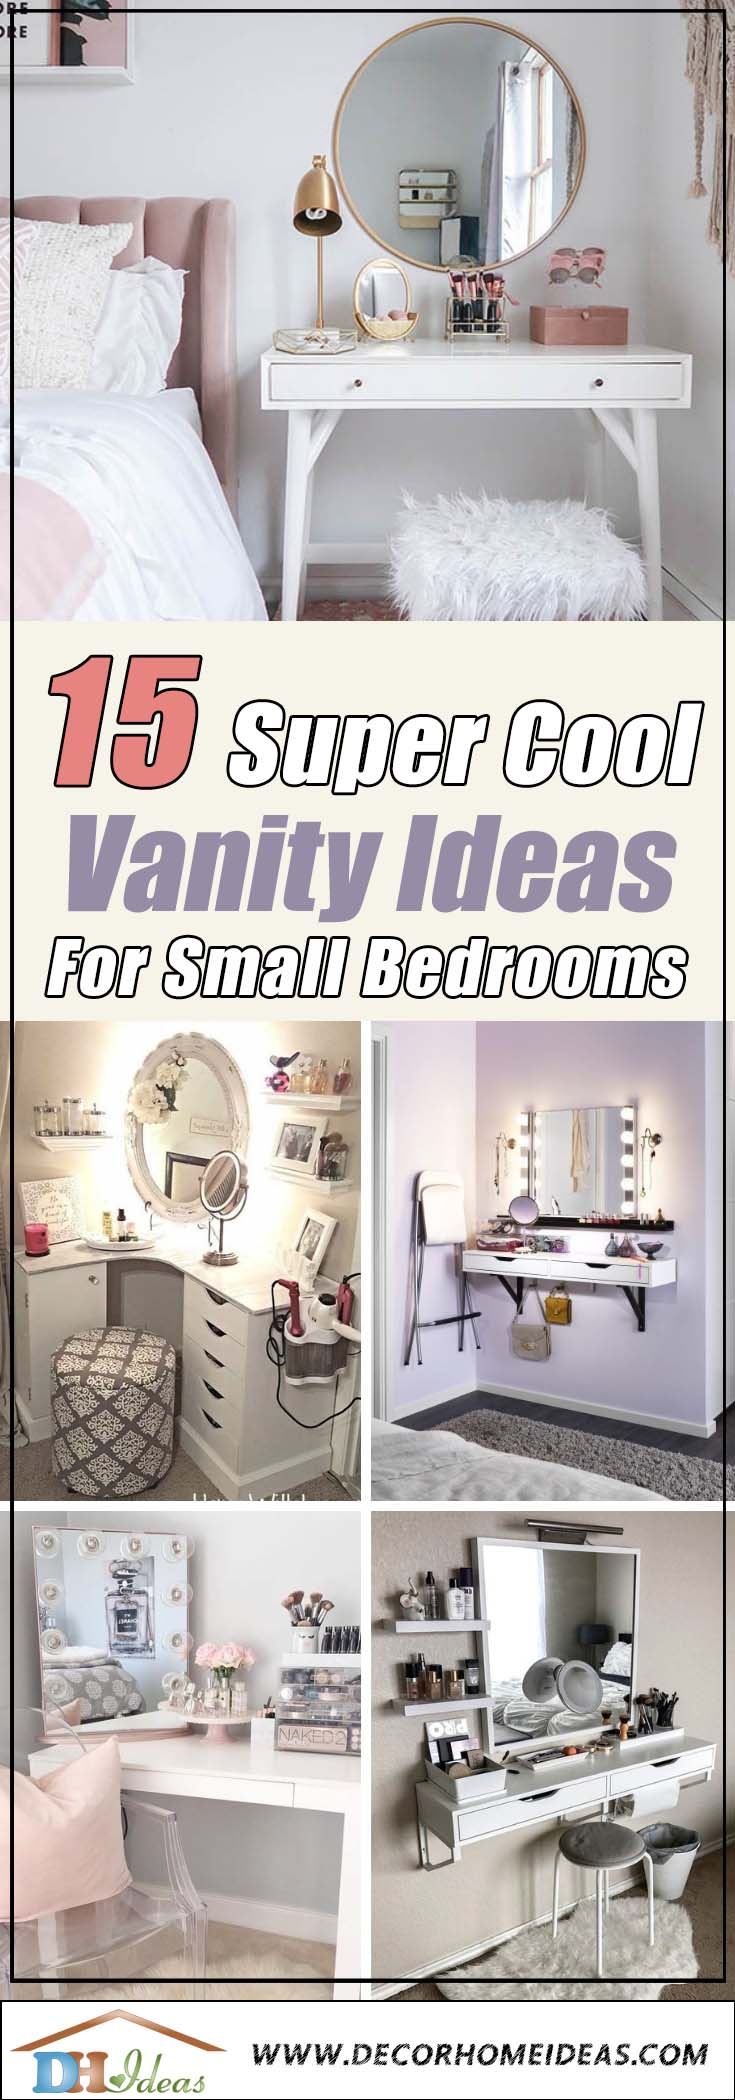 15 Cool Vanity Ideas for Small Bedrooms #vanity #bedroom #vanitybedroom #makeupvanity #homedecor #decorhomeiedeas